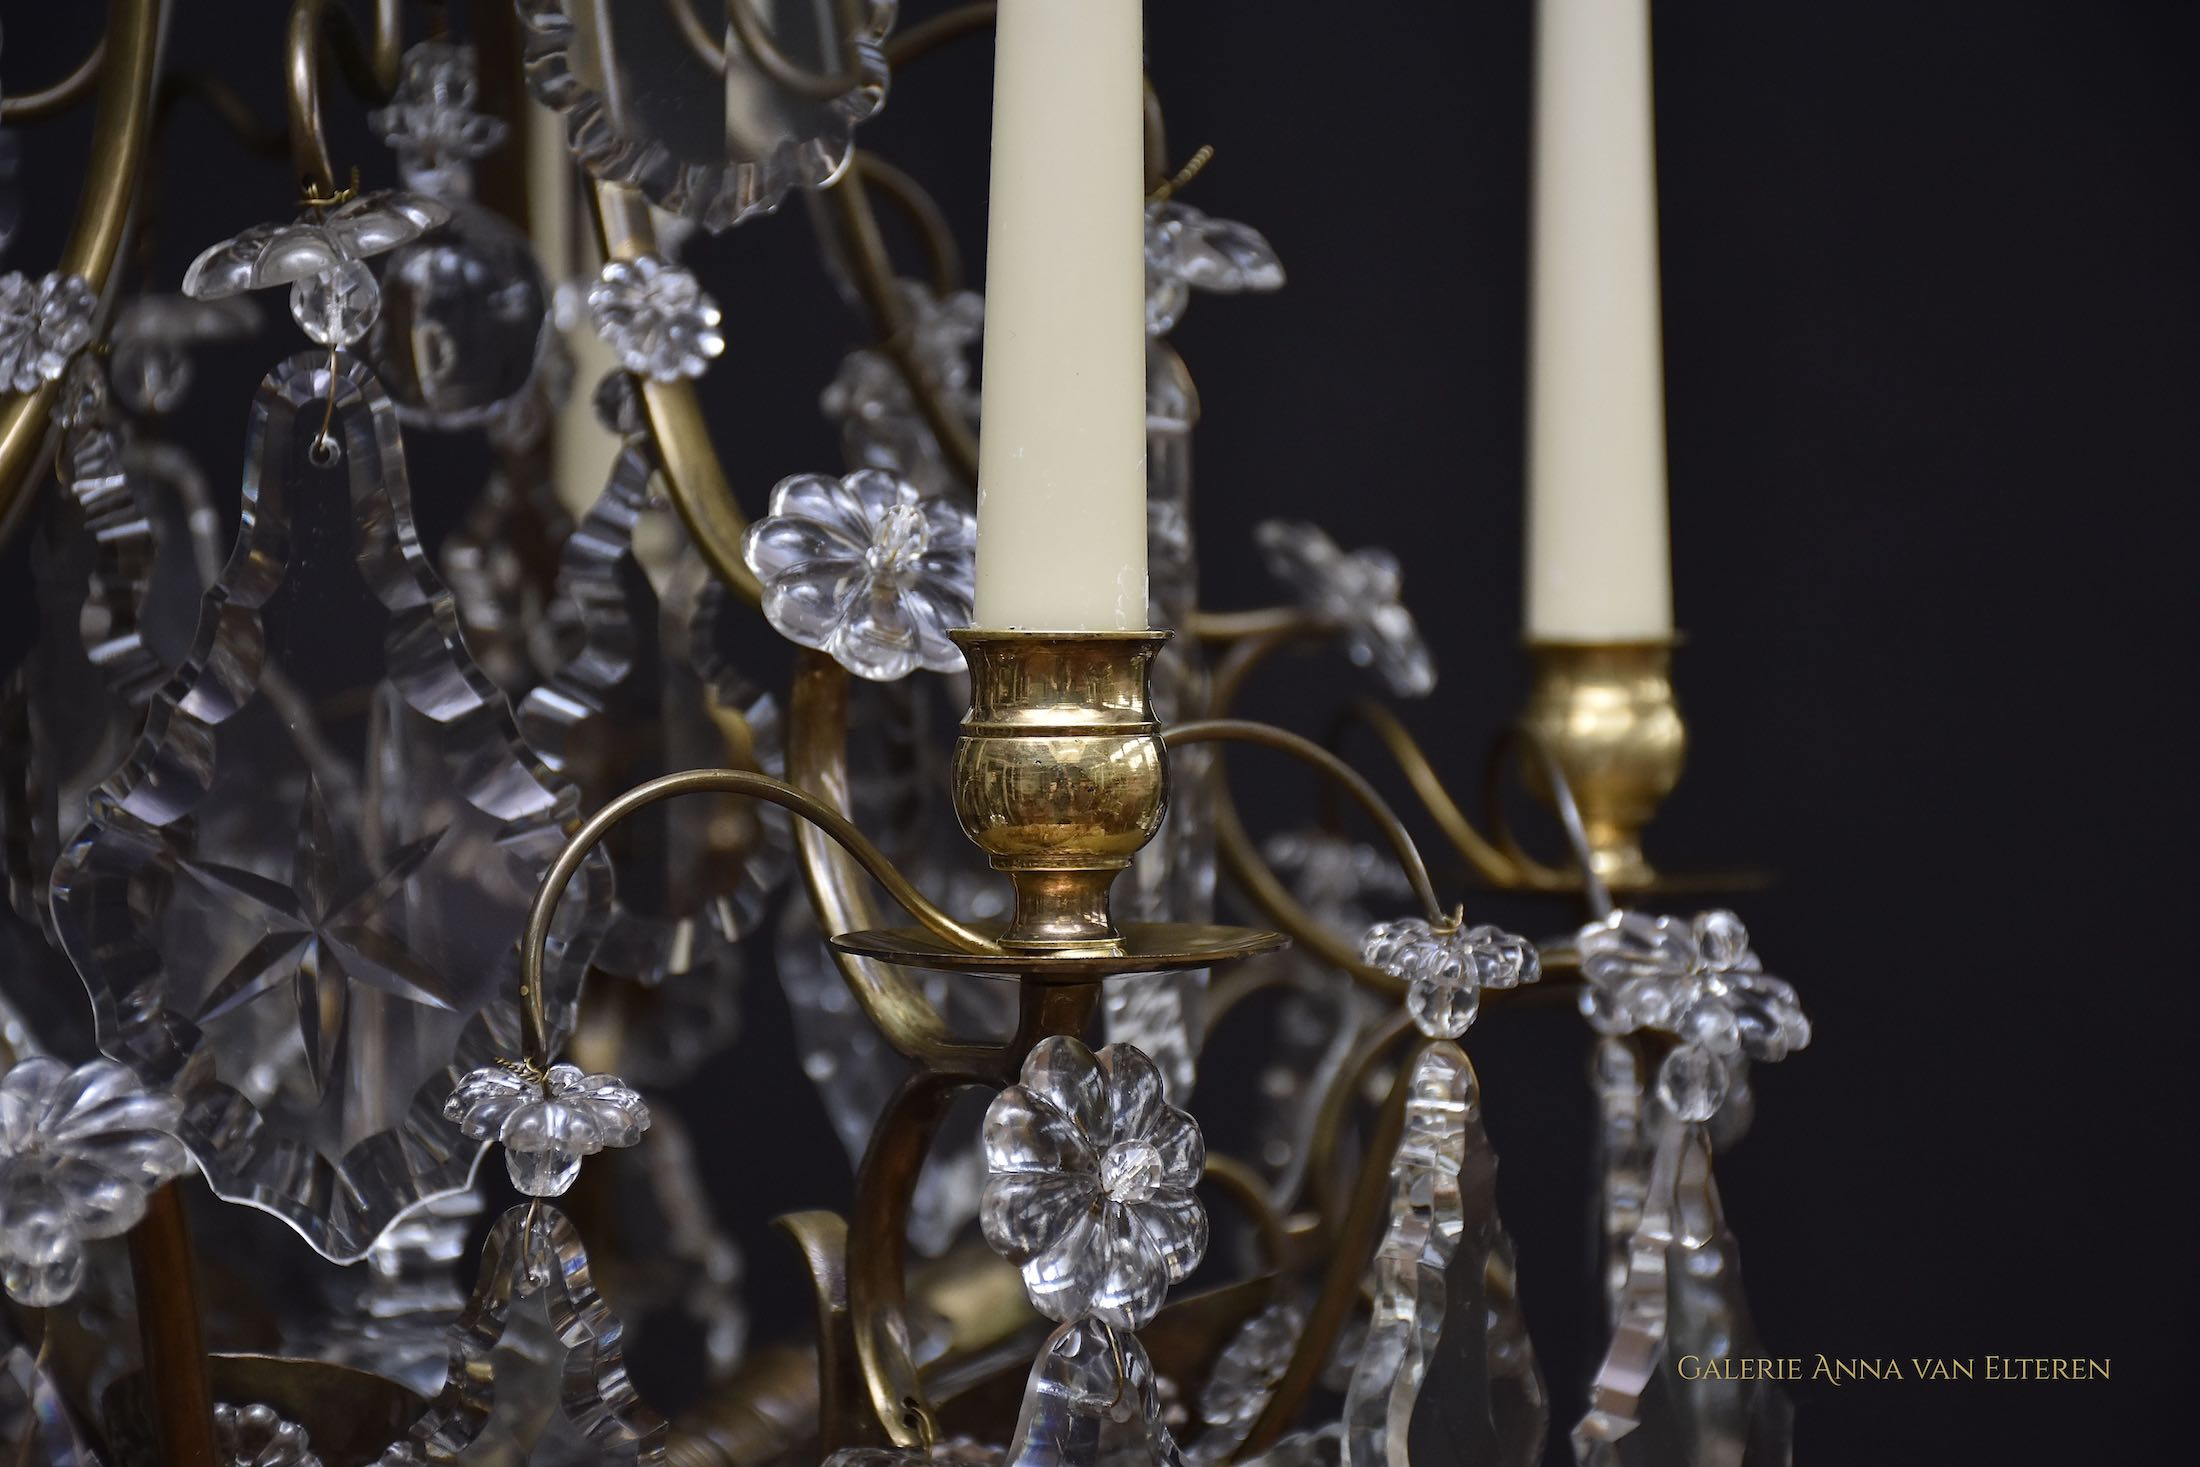 Antique chandelier with candles and lights in the style of Rococo